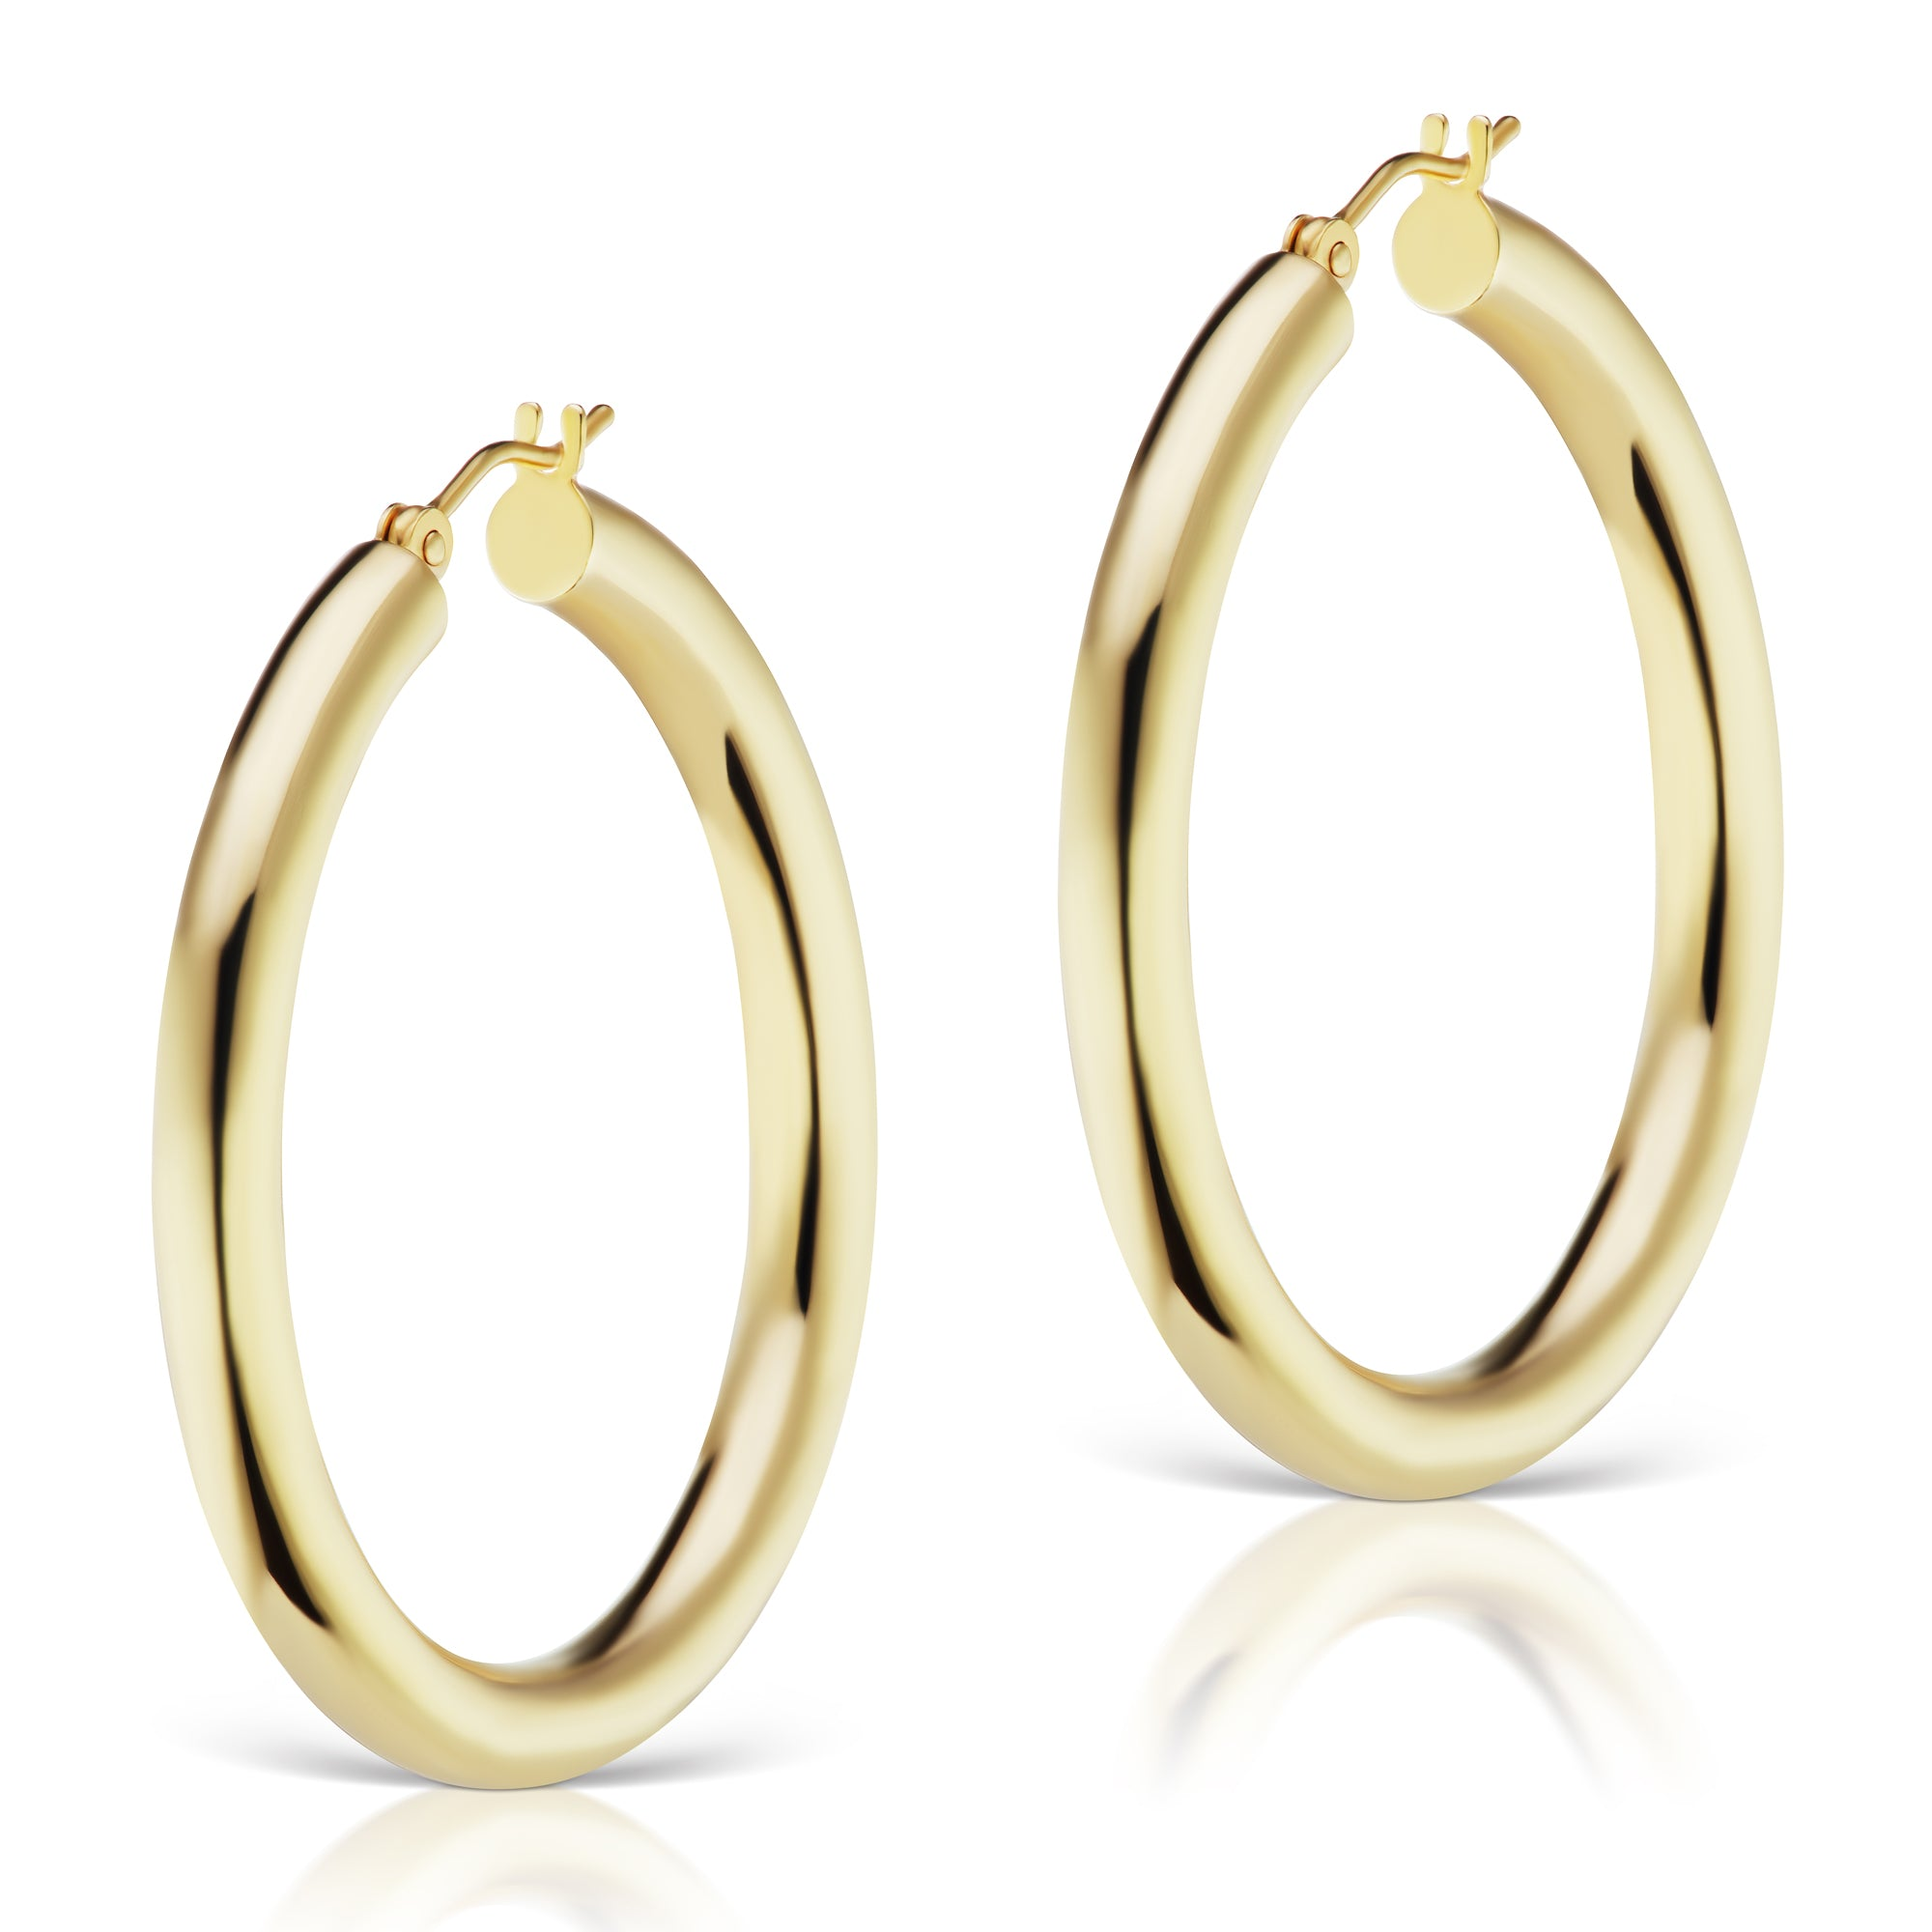 The Gold Heather Hollow Hoops